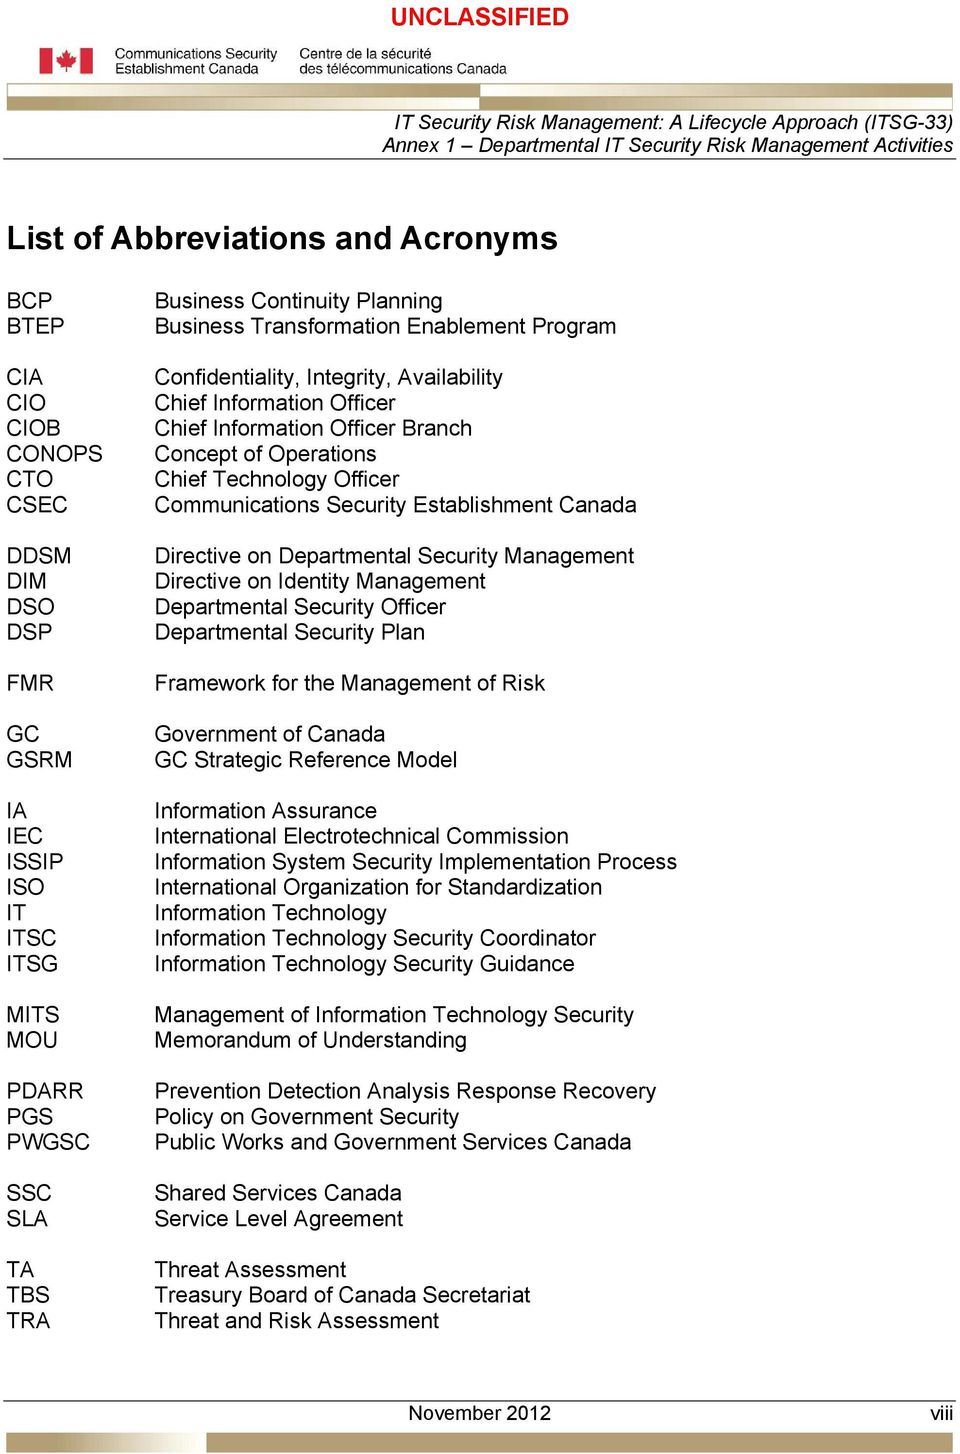 Communications Security Establishment Canada Directive on Departmental Security Management Directive on Identity Management Departmental Security Officer Departmental Security Plan Framework for the